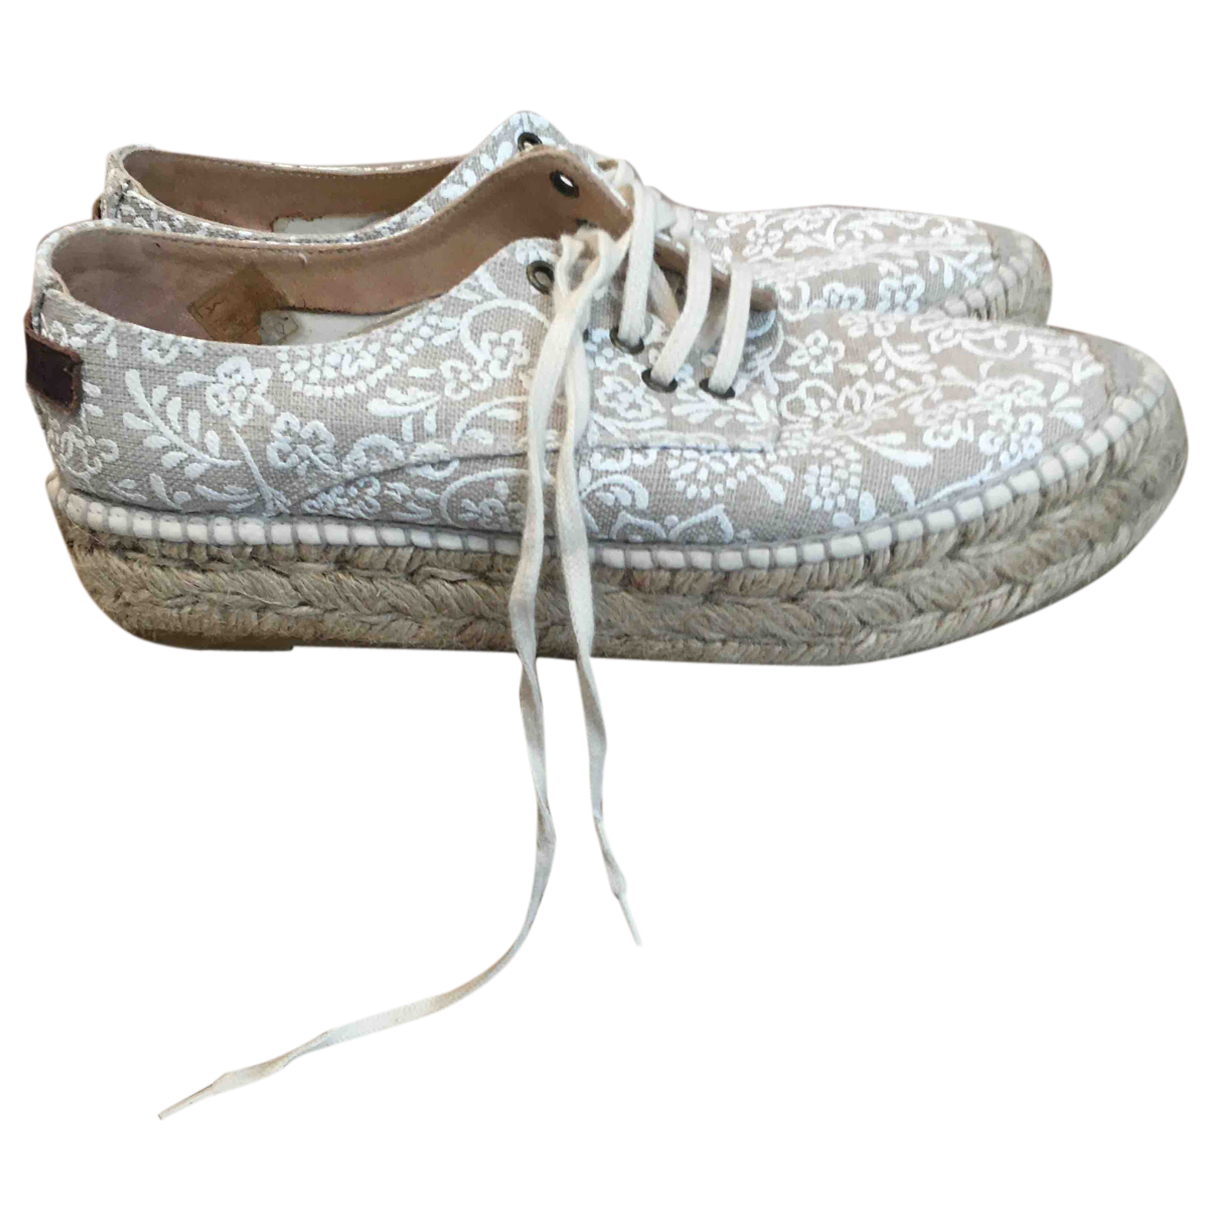 Non Signé / Unsigned N Beige Cloth Espadrilles for Women 36.5 EU